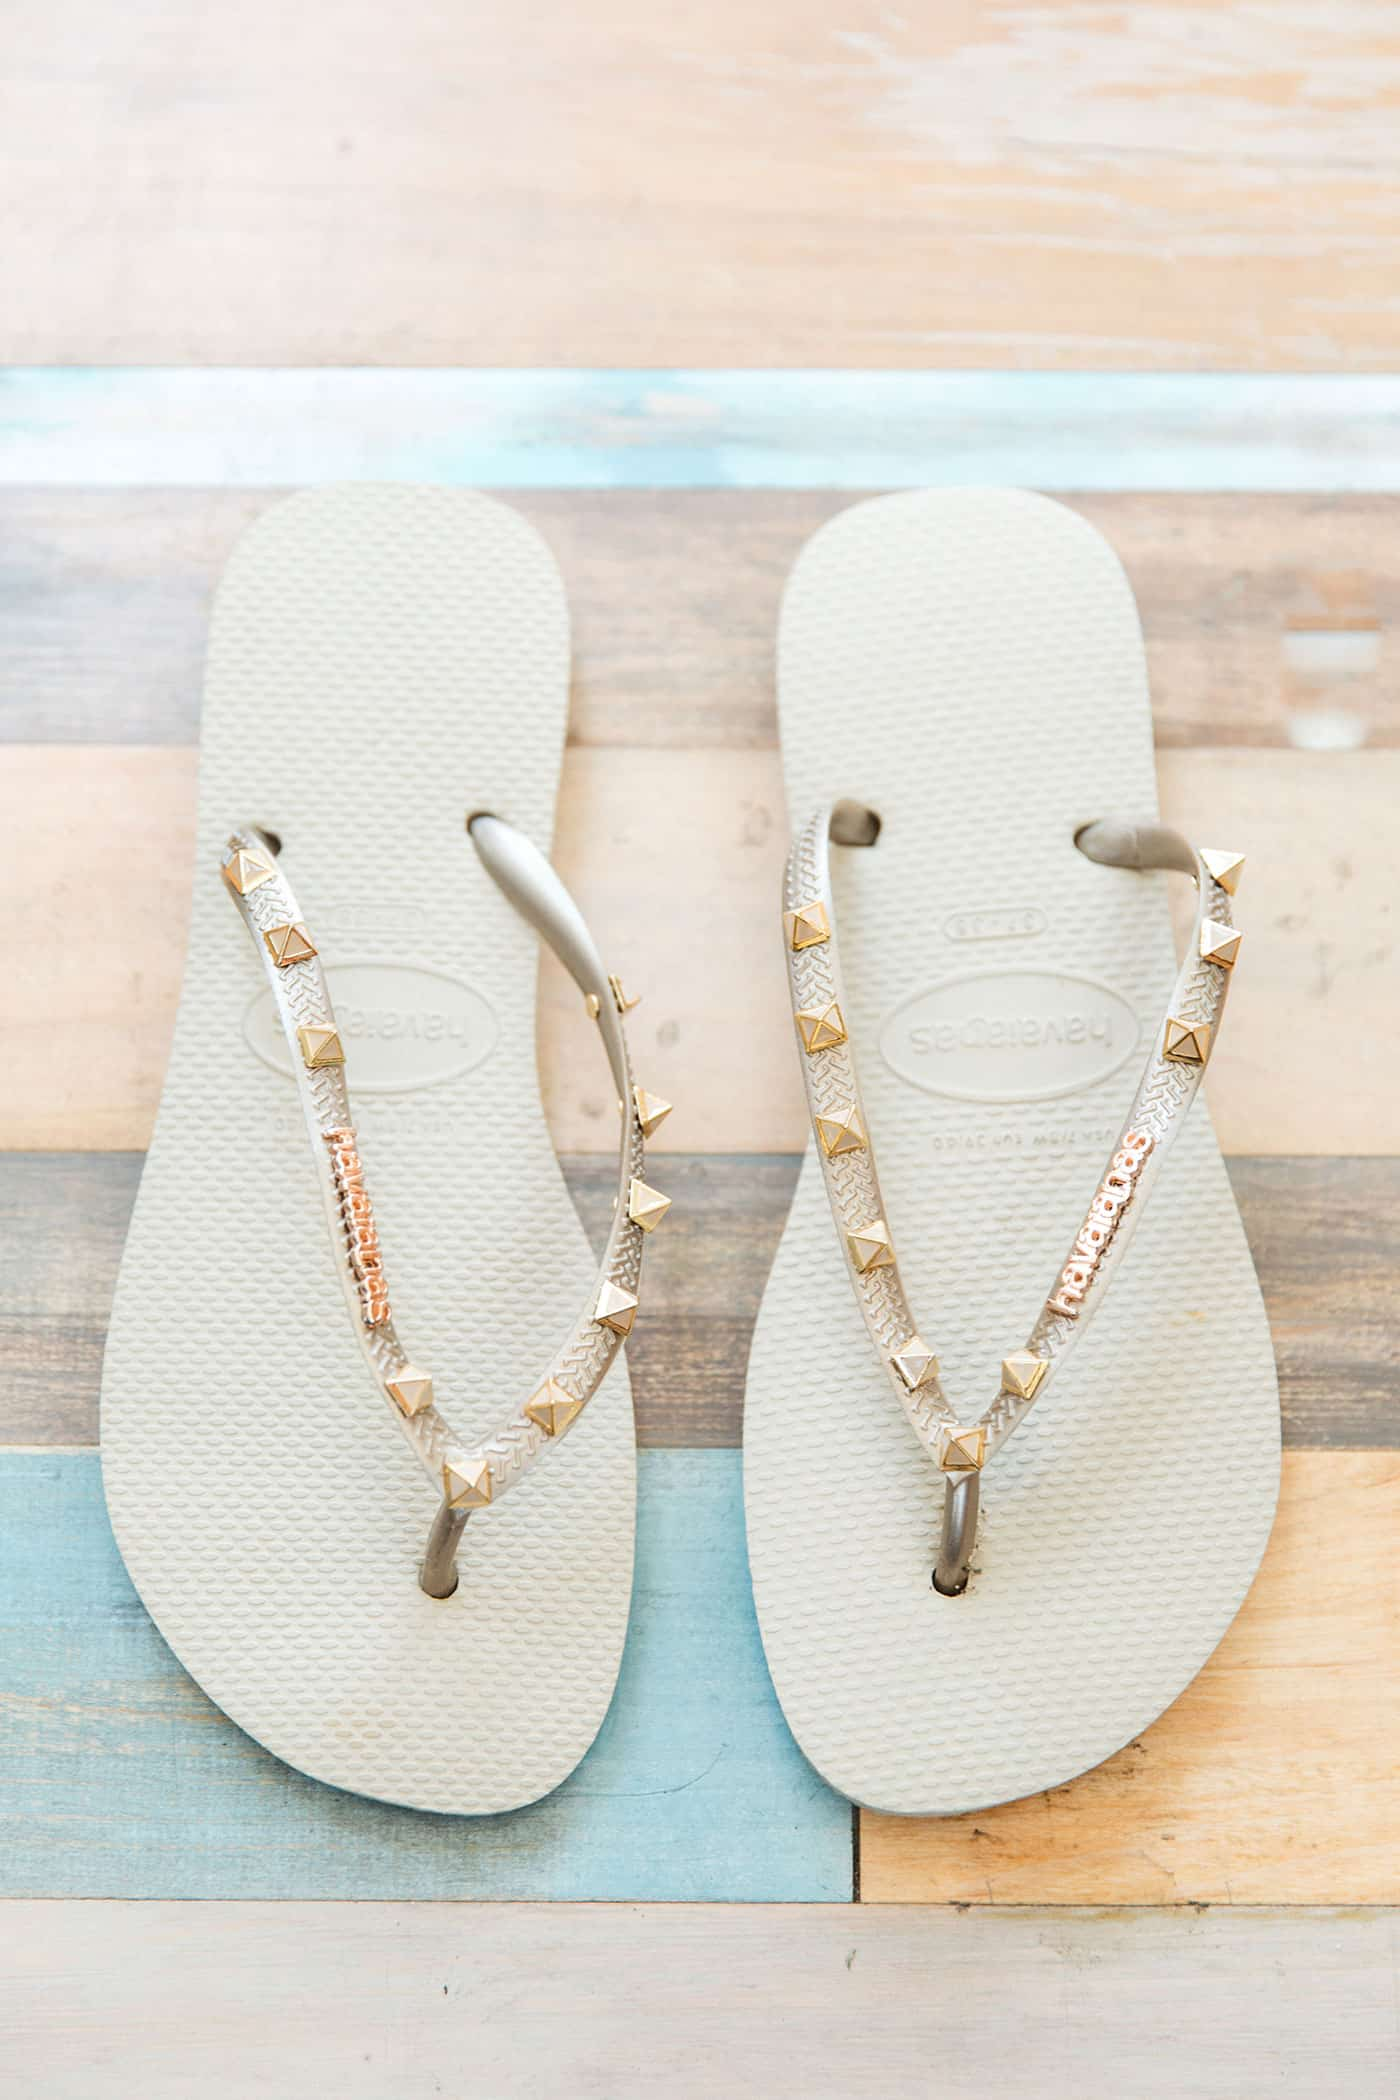 Tiffani Thiessen's Favorite Things July 2016 • Havaianas flip flops • Photography by Brandon Kidd